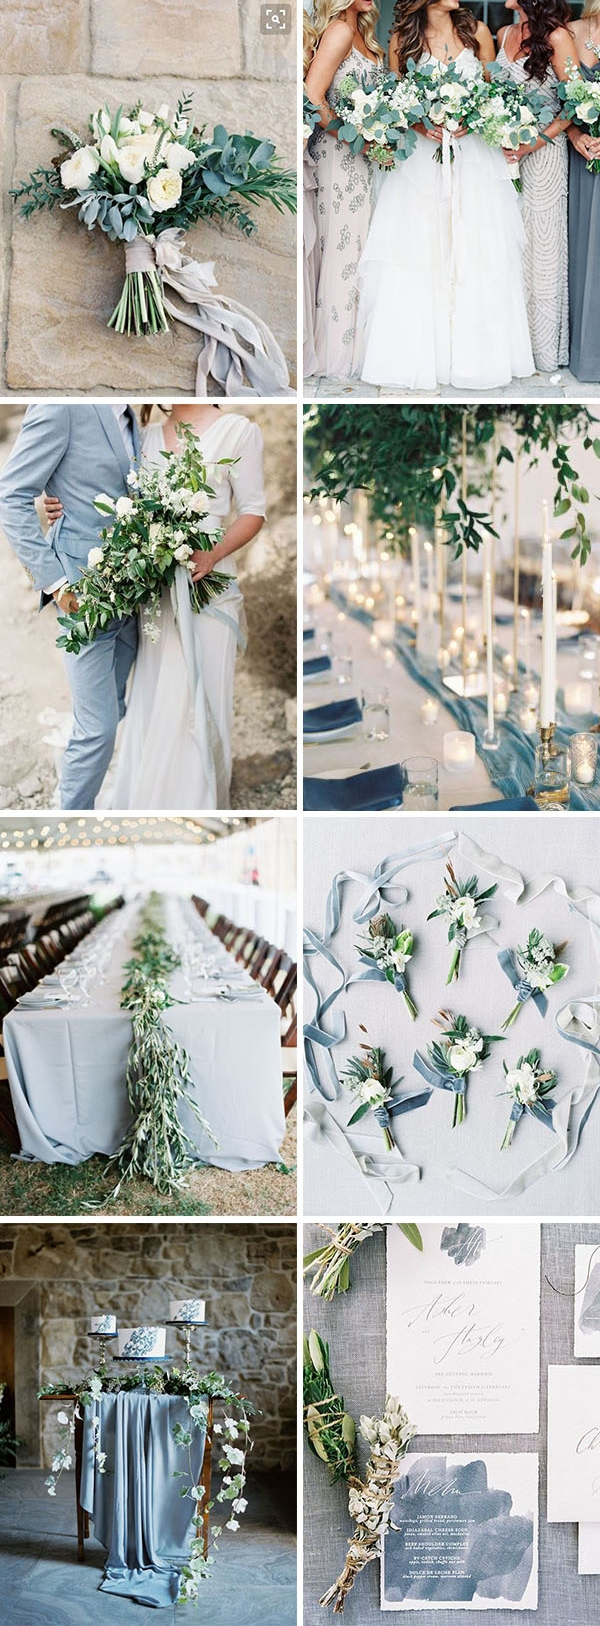 dusky-blues-neutral-shades-organic-wedding-color-palette-ideas-for-all-seasons-1.jpg